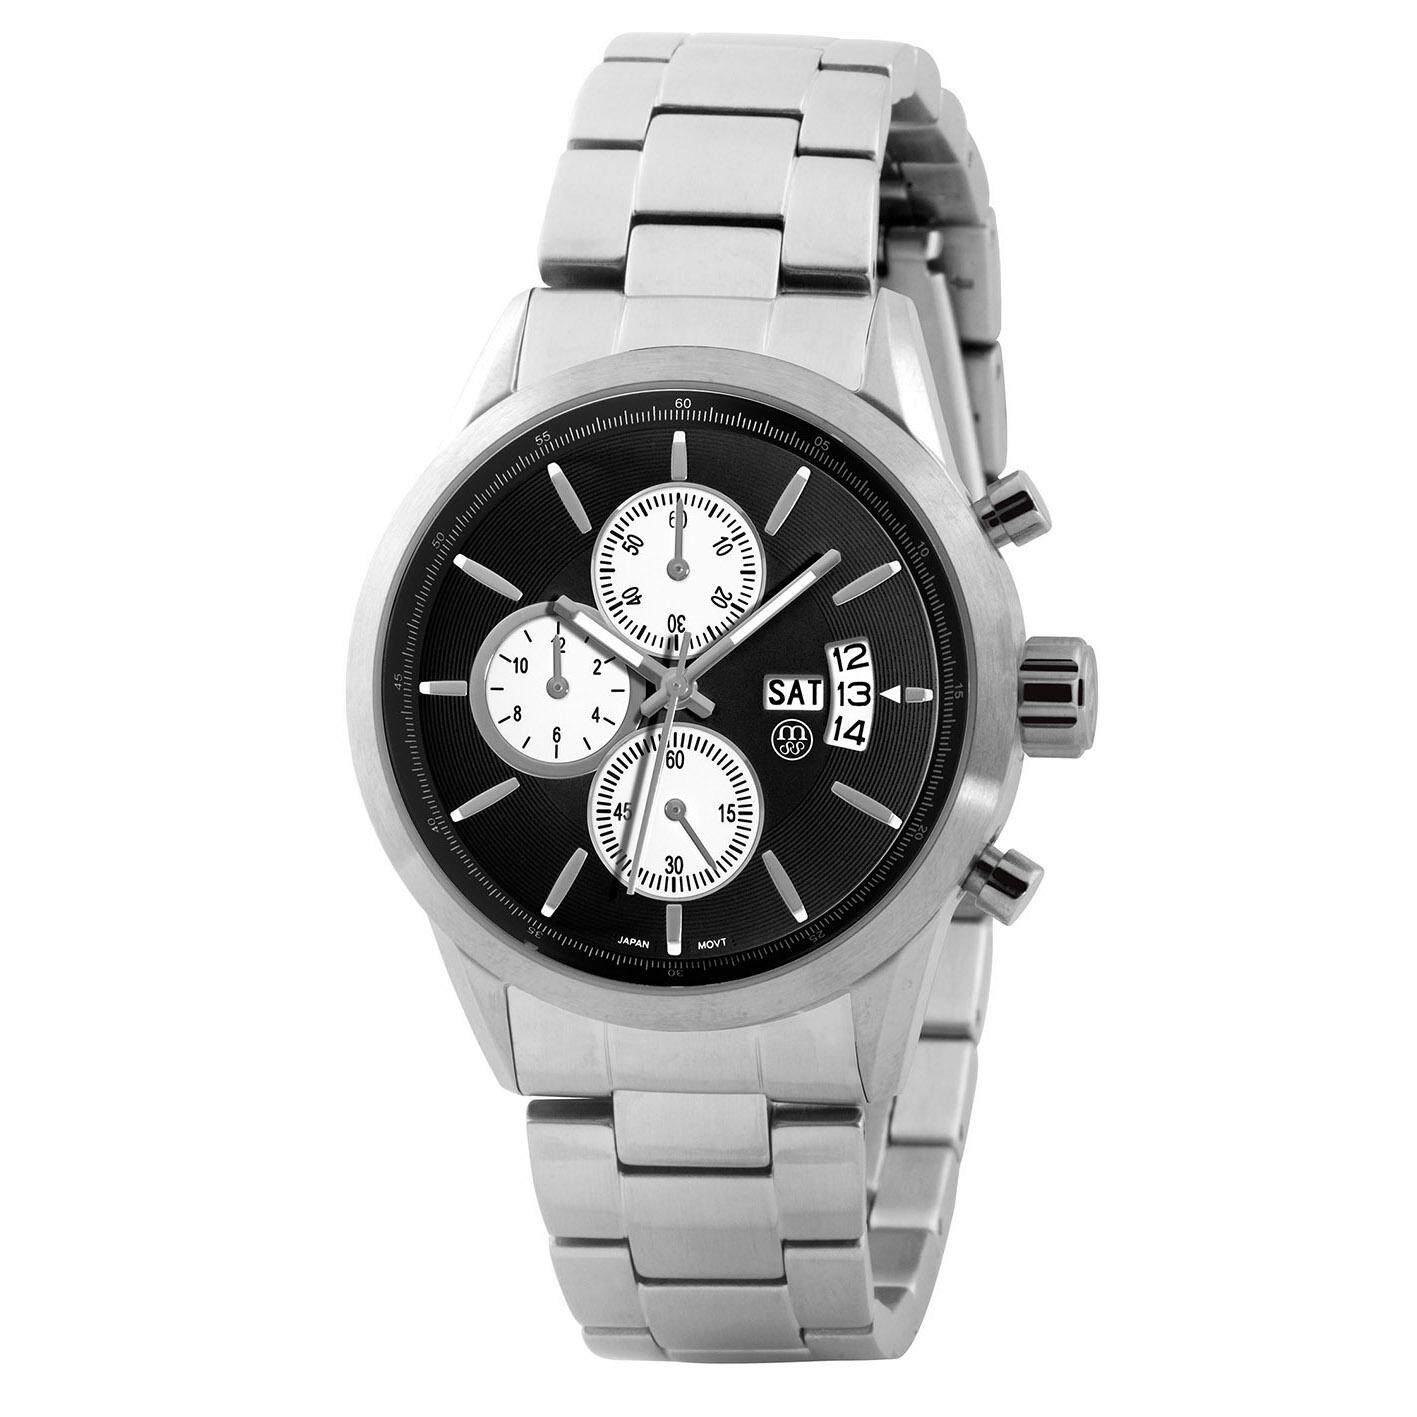 MASSA COLLECTIONS NOBLER Stainless Steel Sapphire Glass Chronograph Steel Strap Unisex Watch